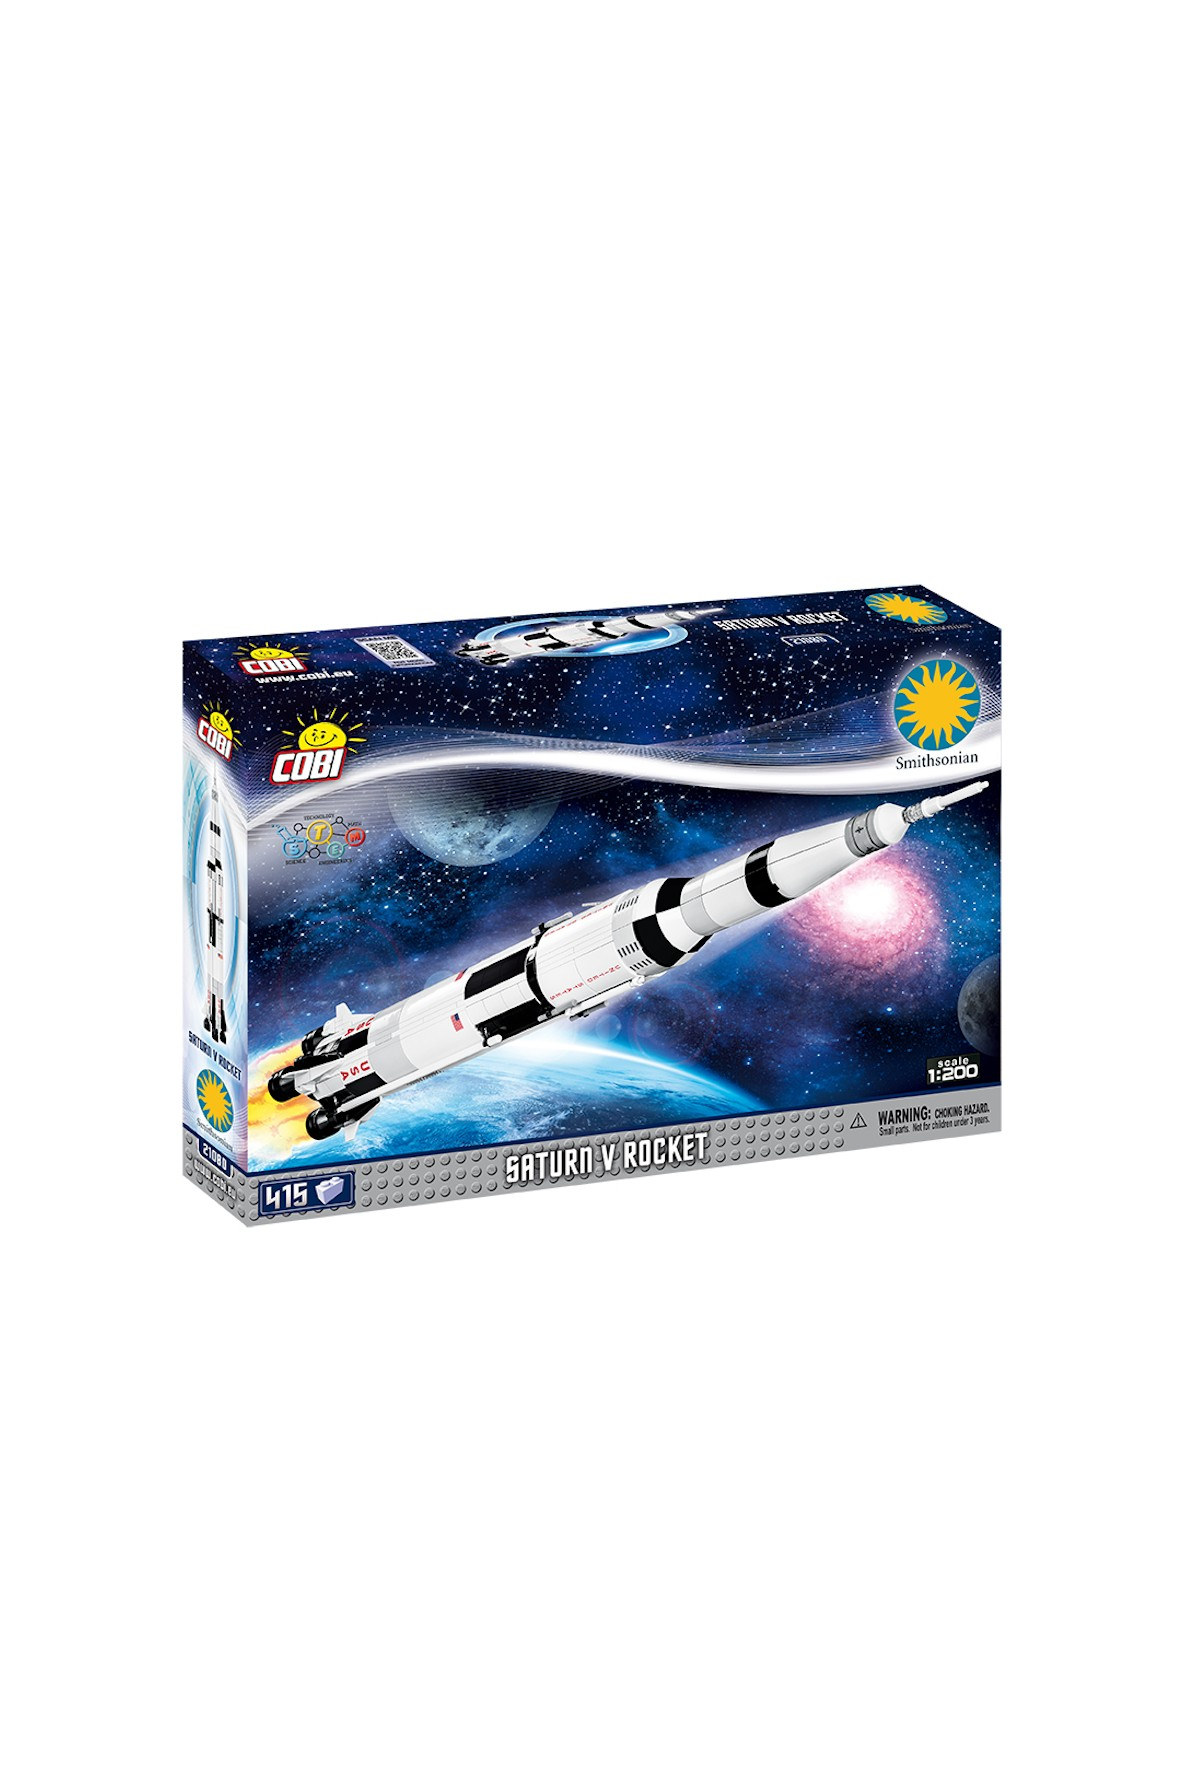 Klocki Cobi Smithsonian Saturn V Rocket 415el